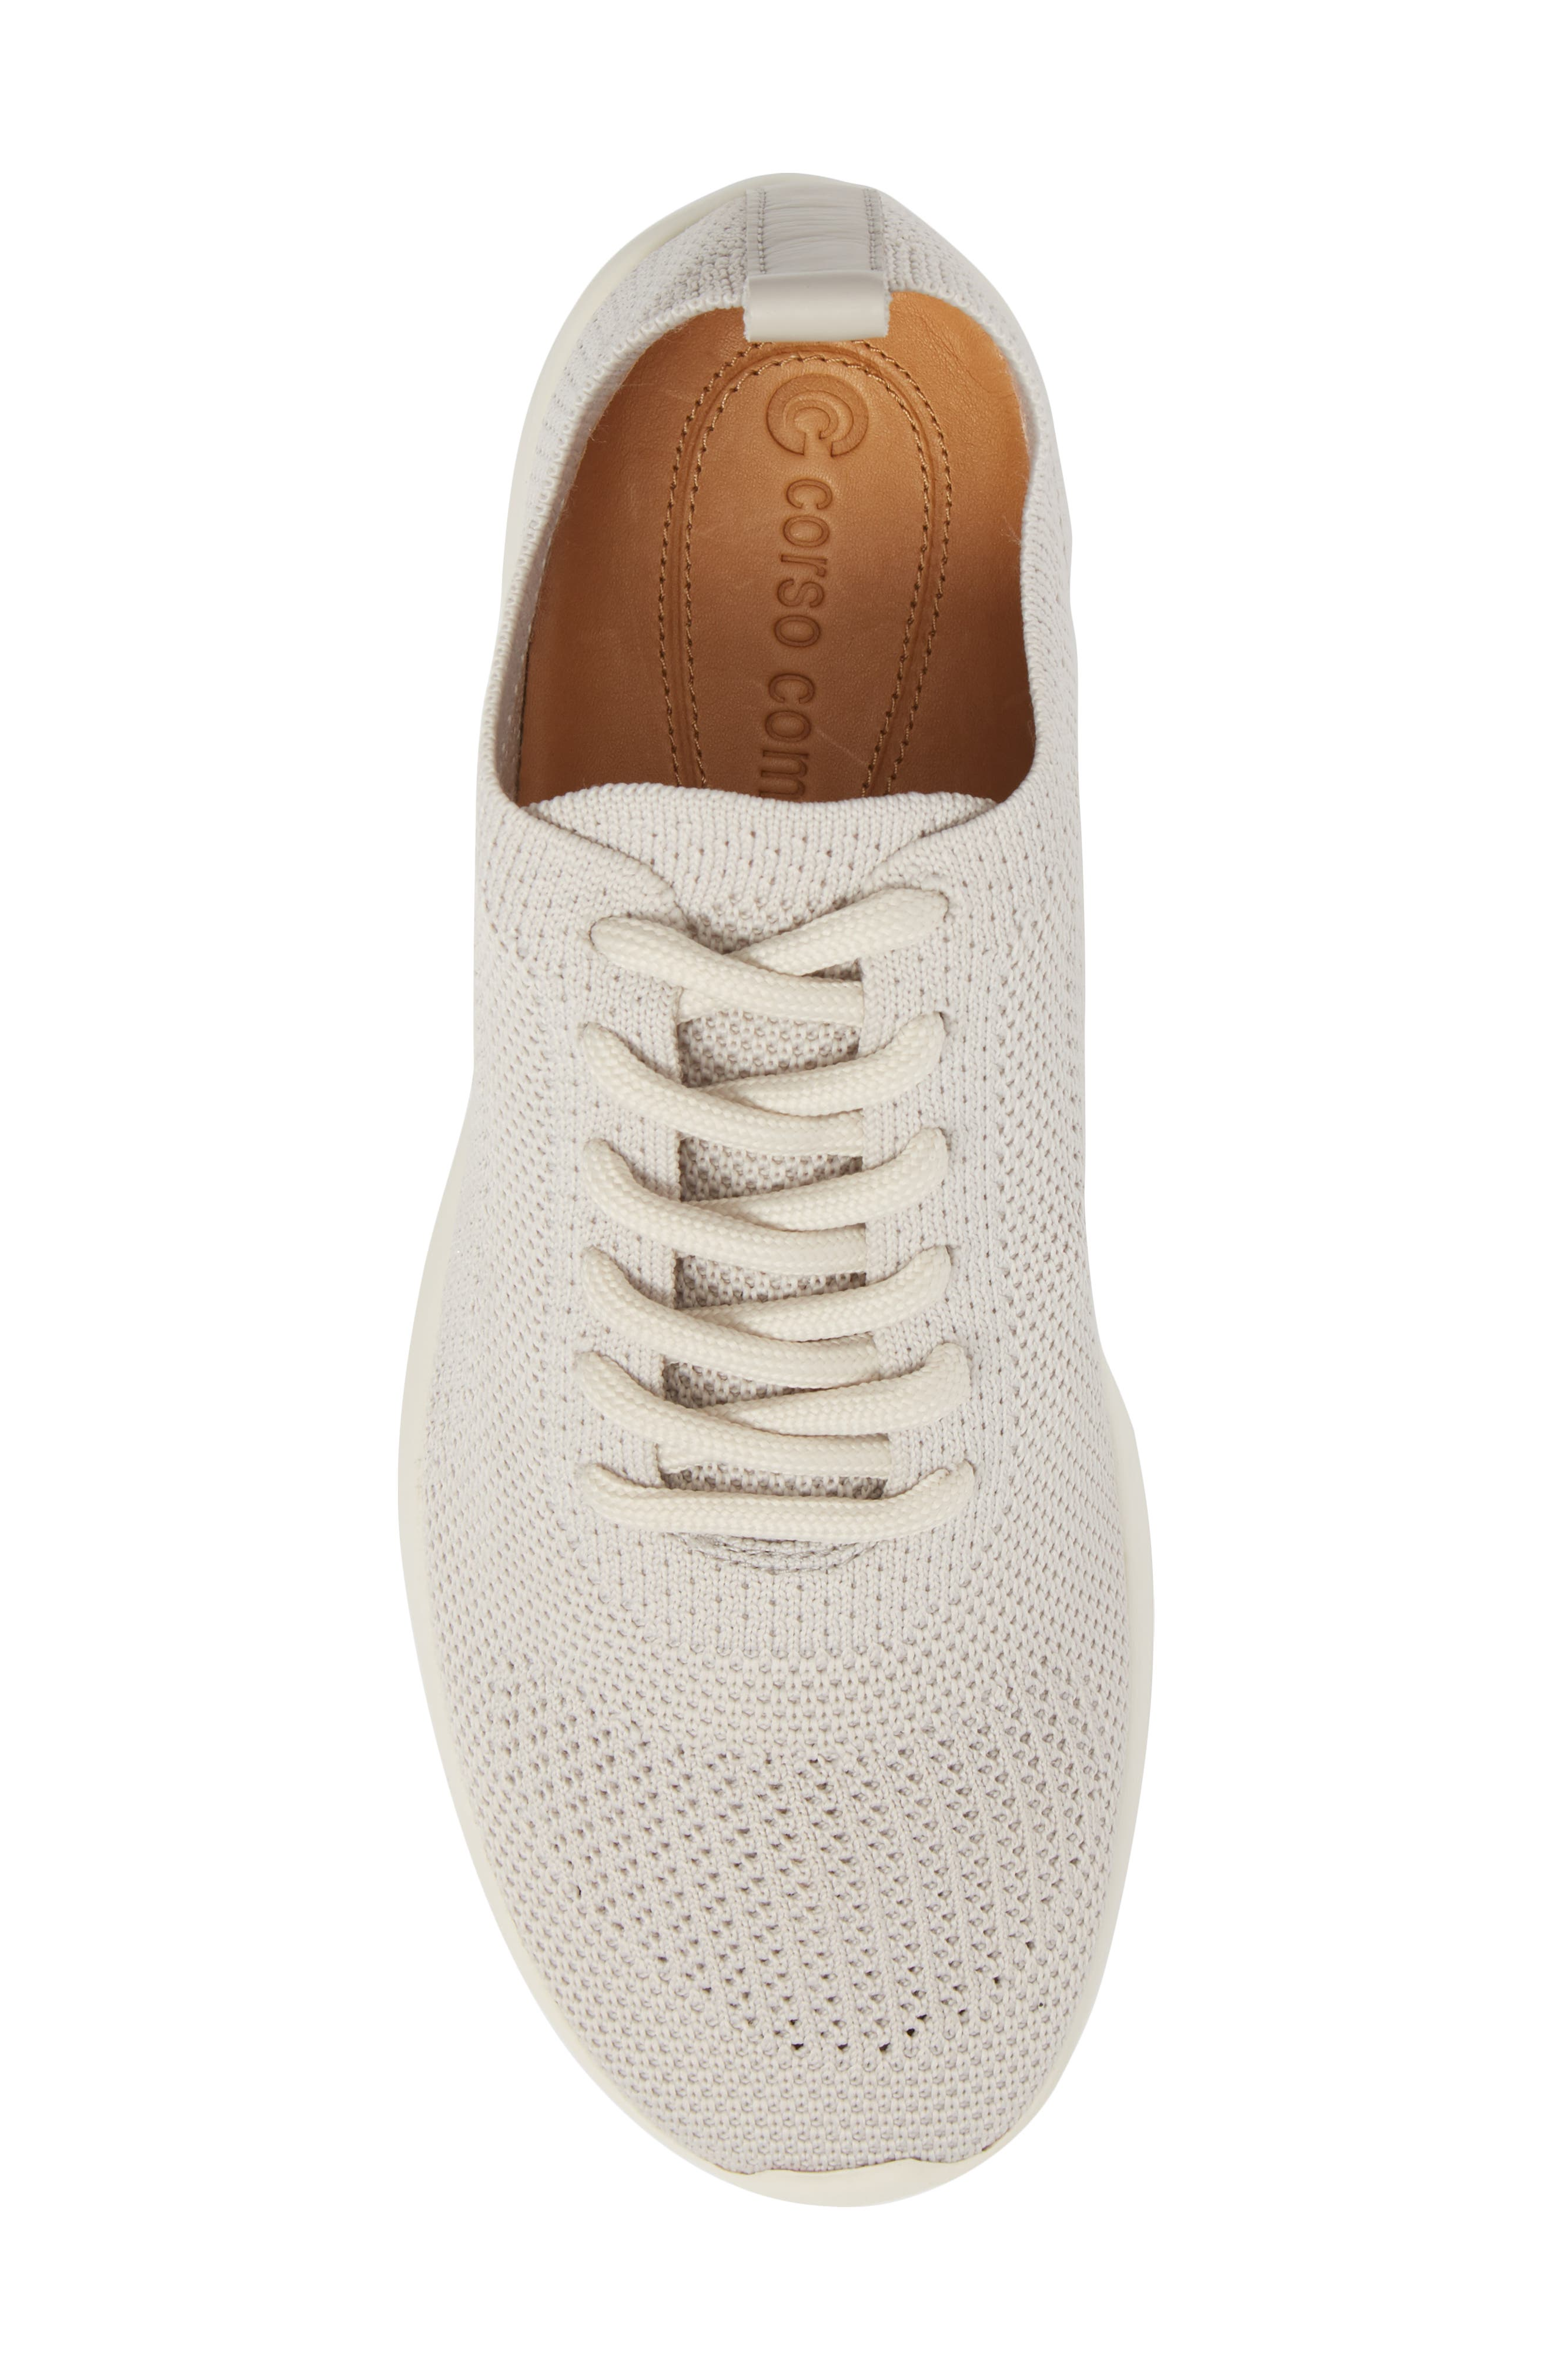 Randee Sneaker,                             Alternate thumbnail 5, color,                             MOON FABRIC